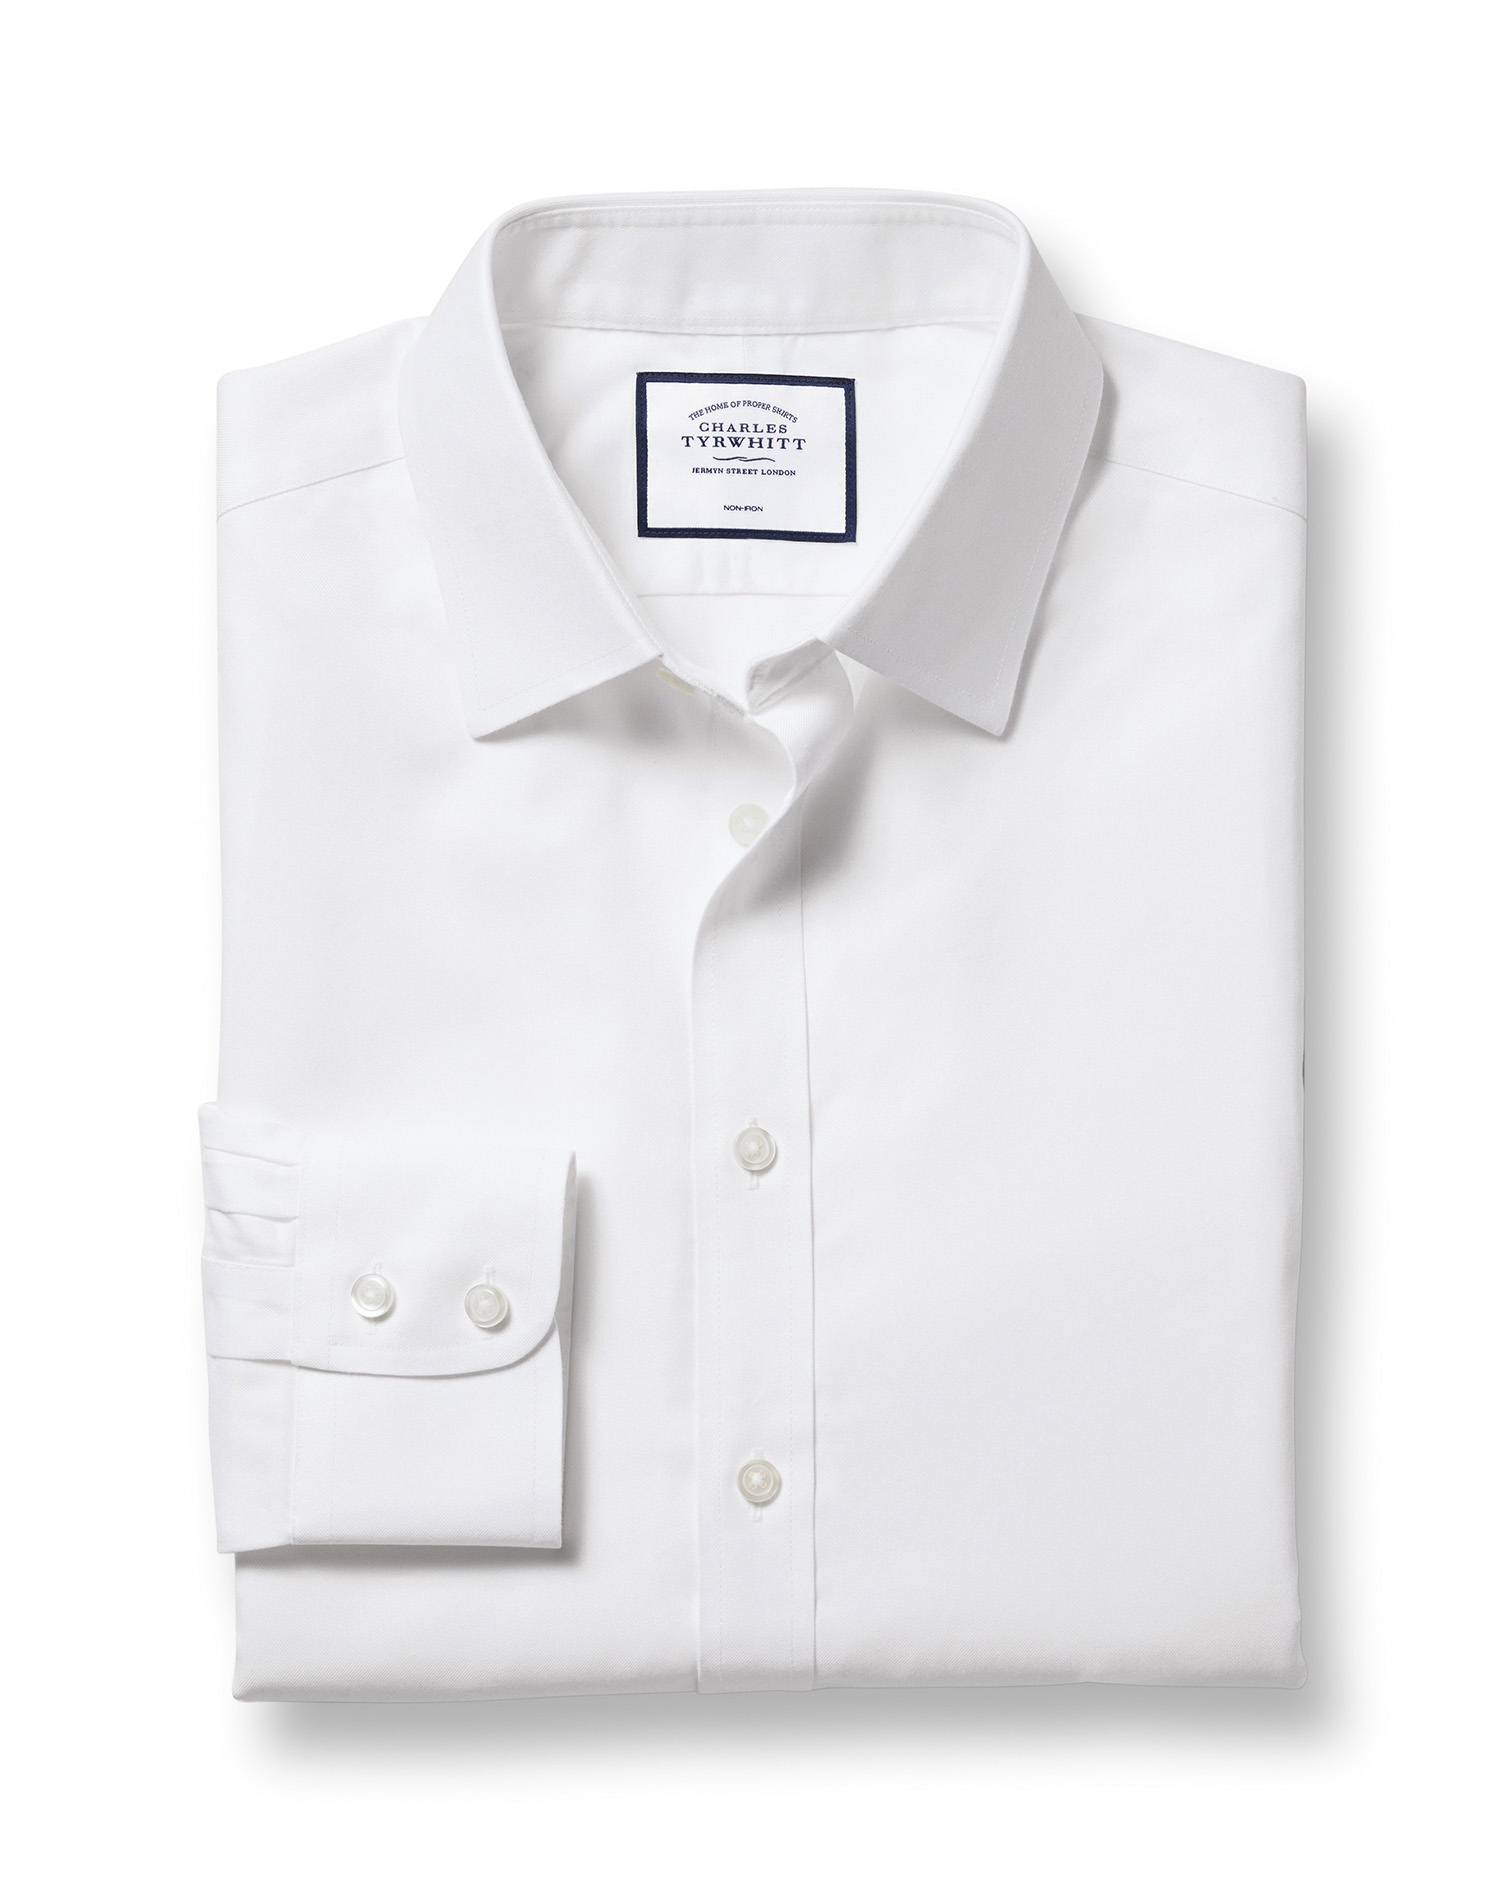 Extra Slim Fit Non-Iron Twill White Cotton Formal Shirt Single Cuff Size 16/36 by Charles Tyrwhitt